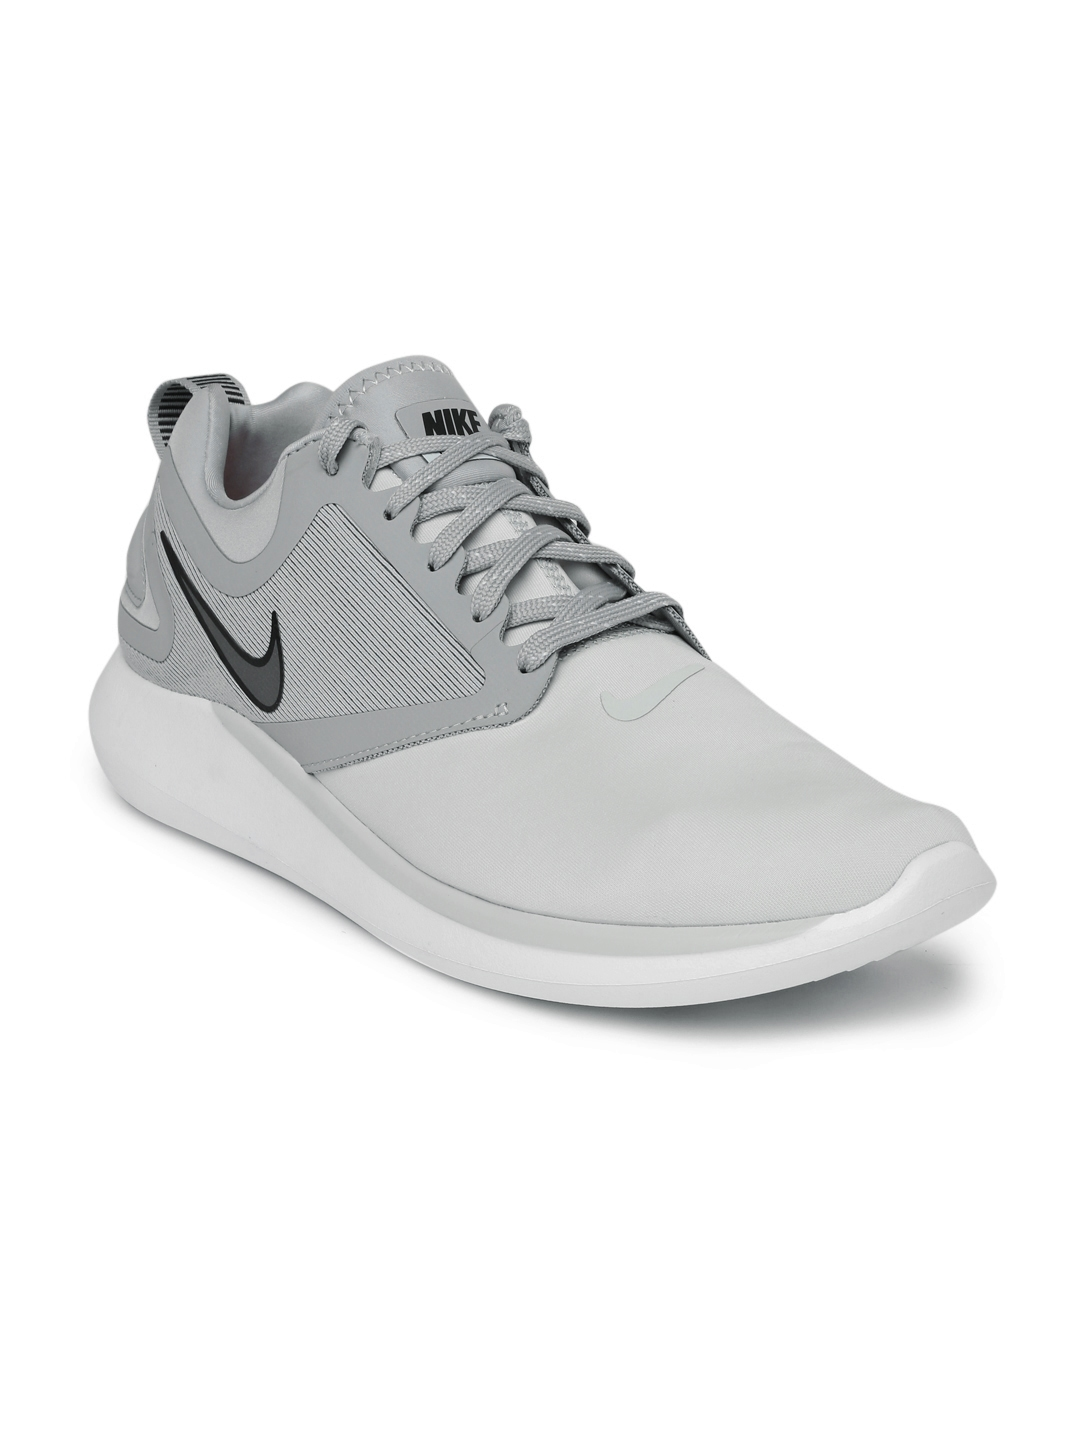 72428a259 11503483819165-Nike-Men-Grey-Running-Shoes-8271503483819049-1.jpg